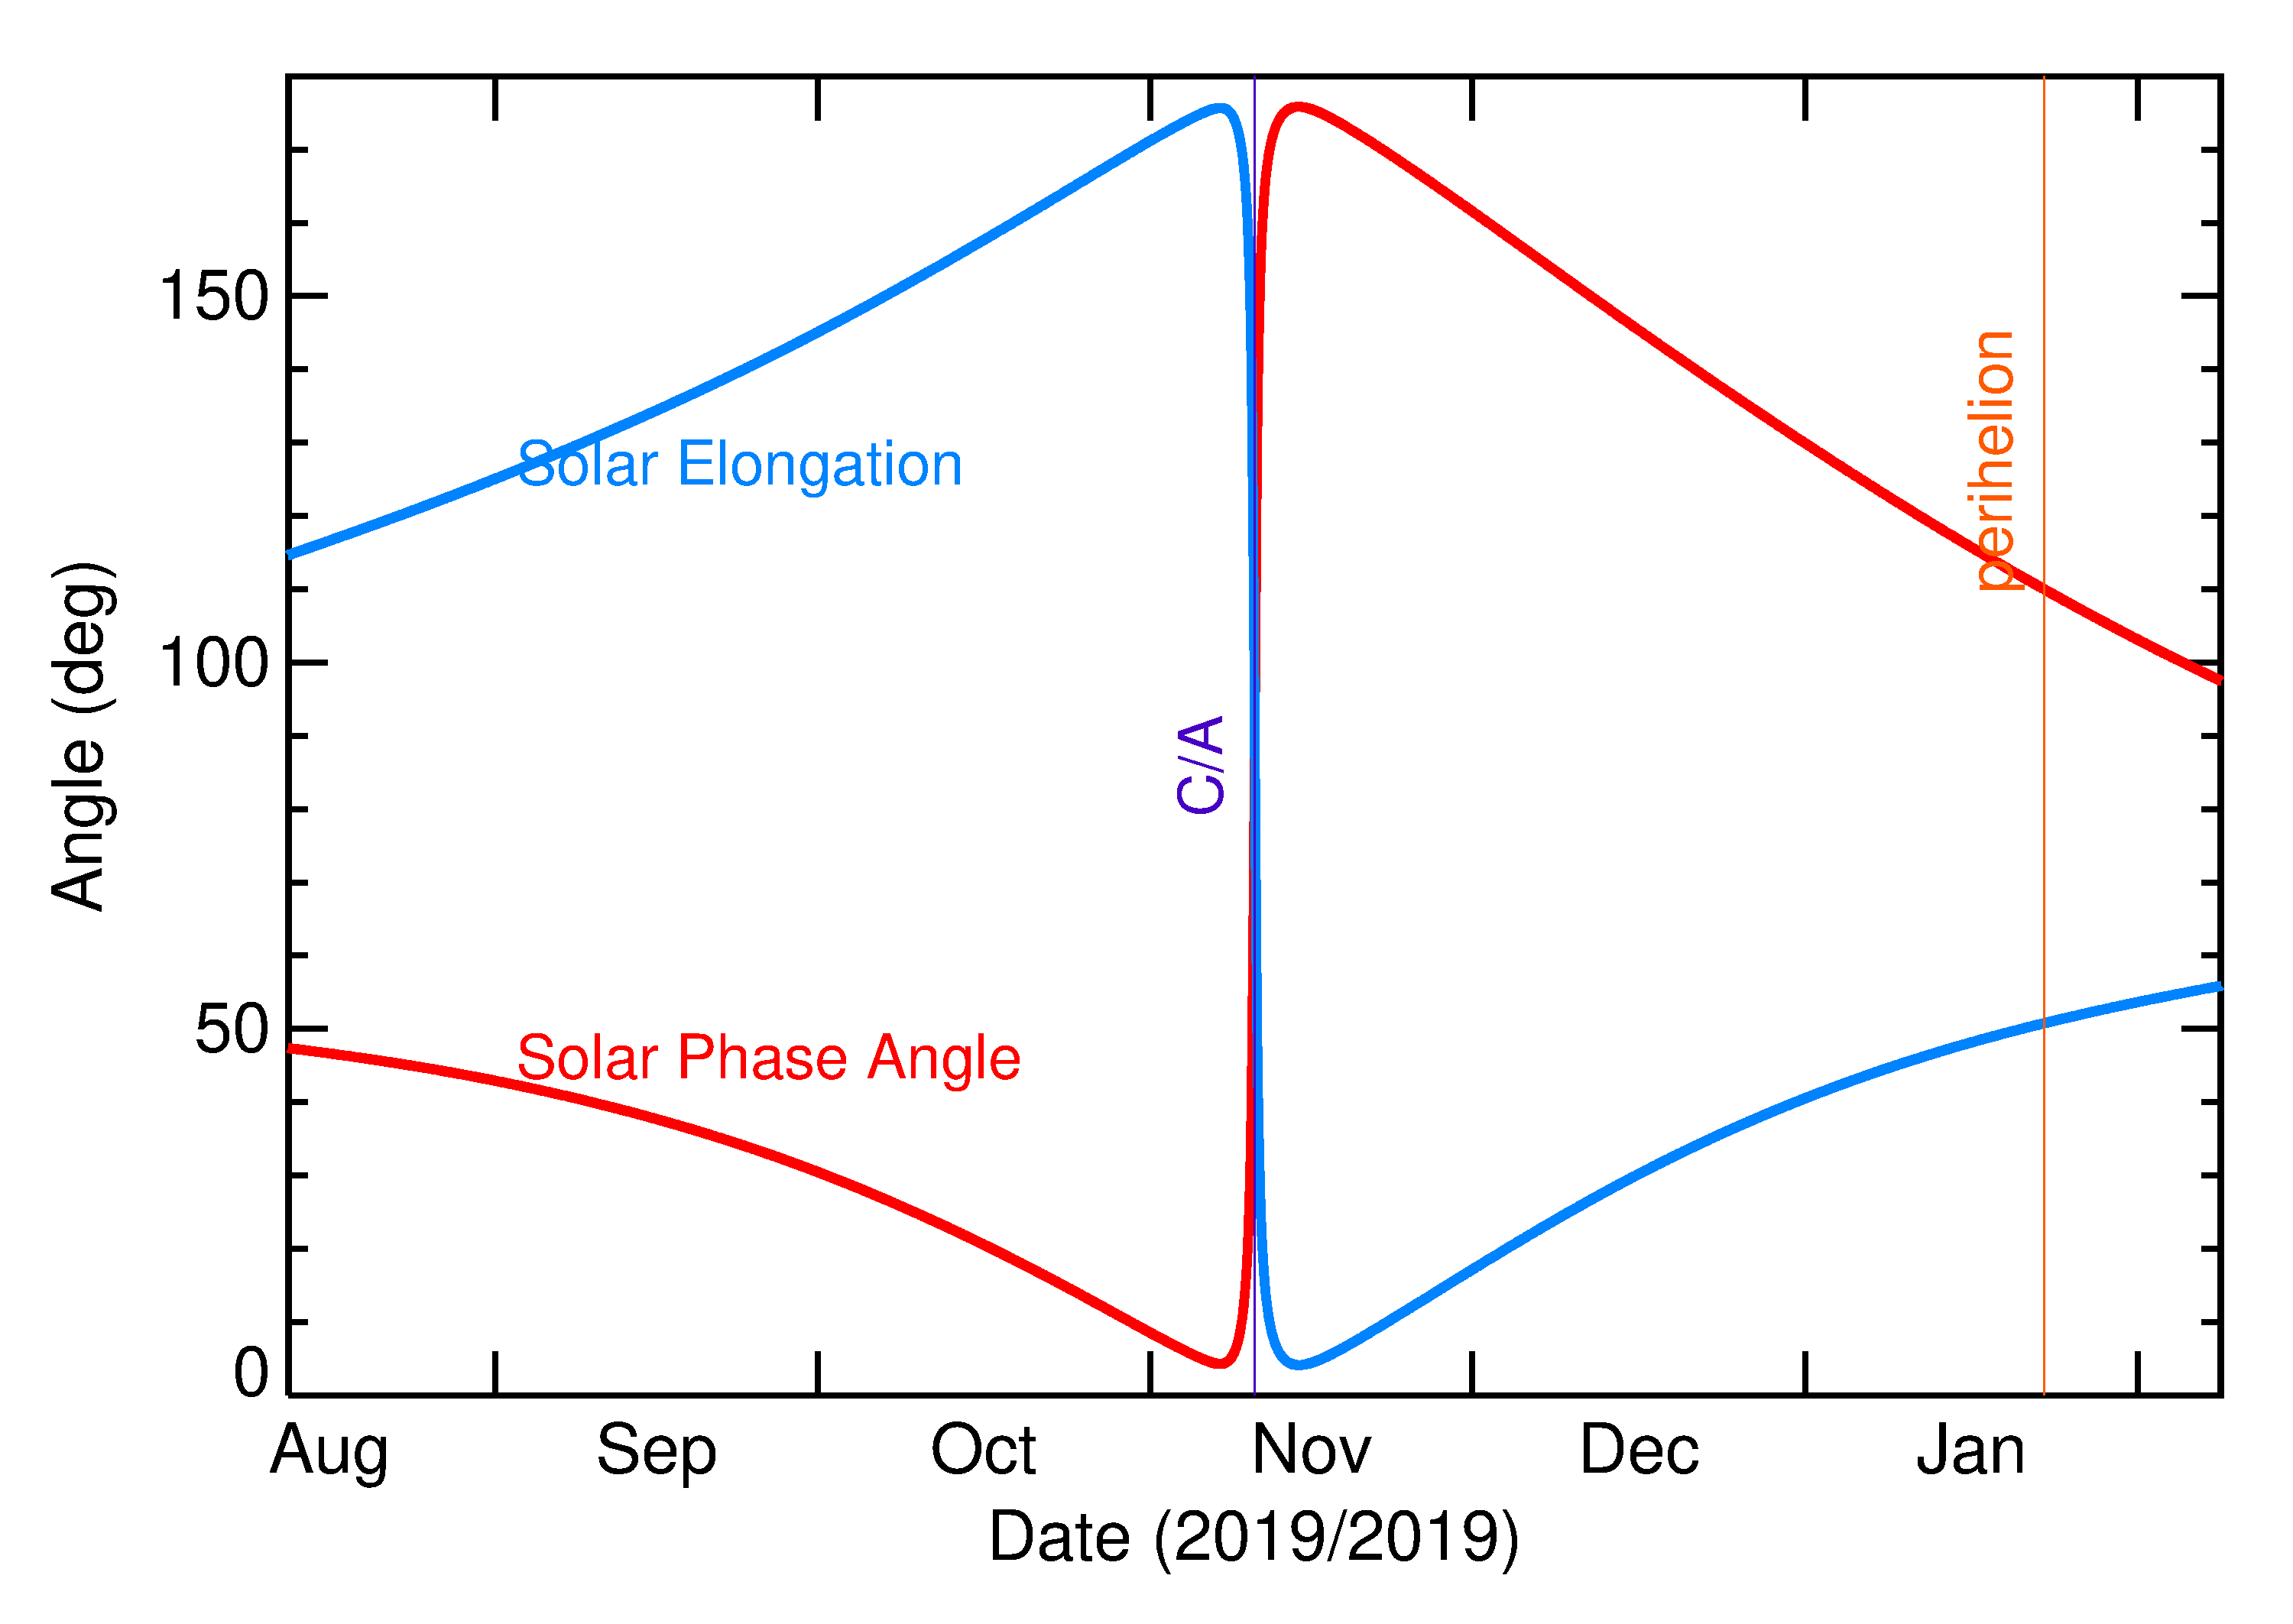 Solar Elongation and Solar Phase Angle of 2019 VB5 in the months around closest approach